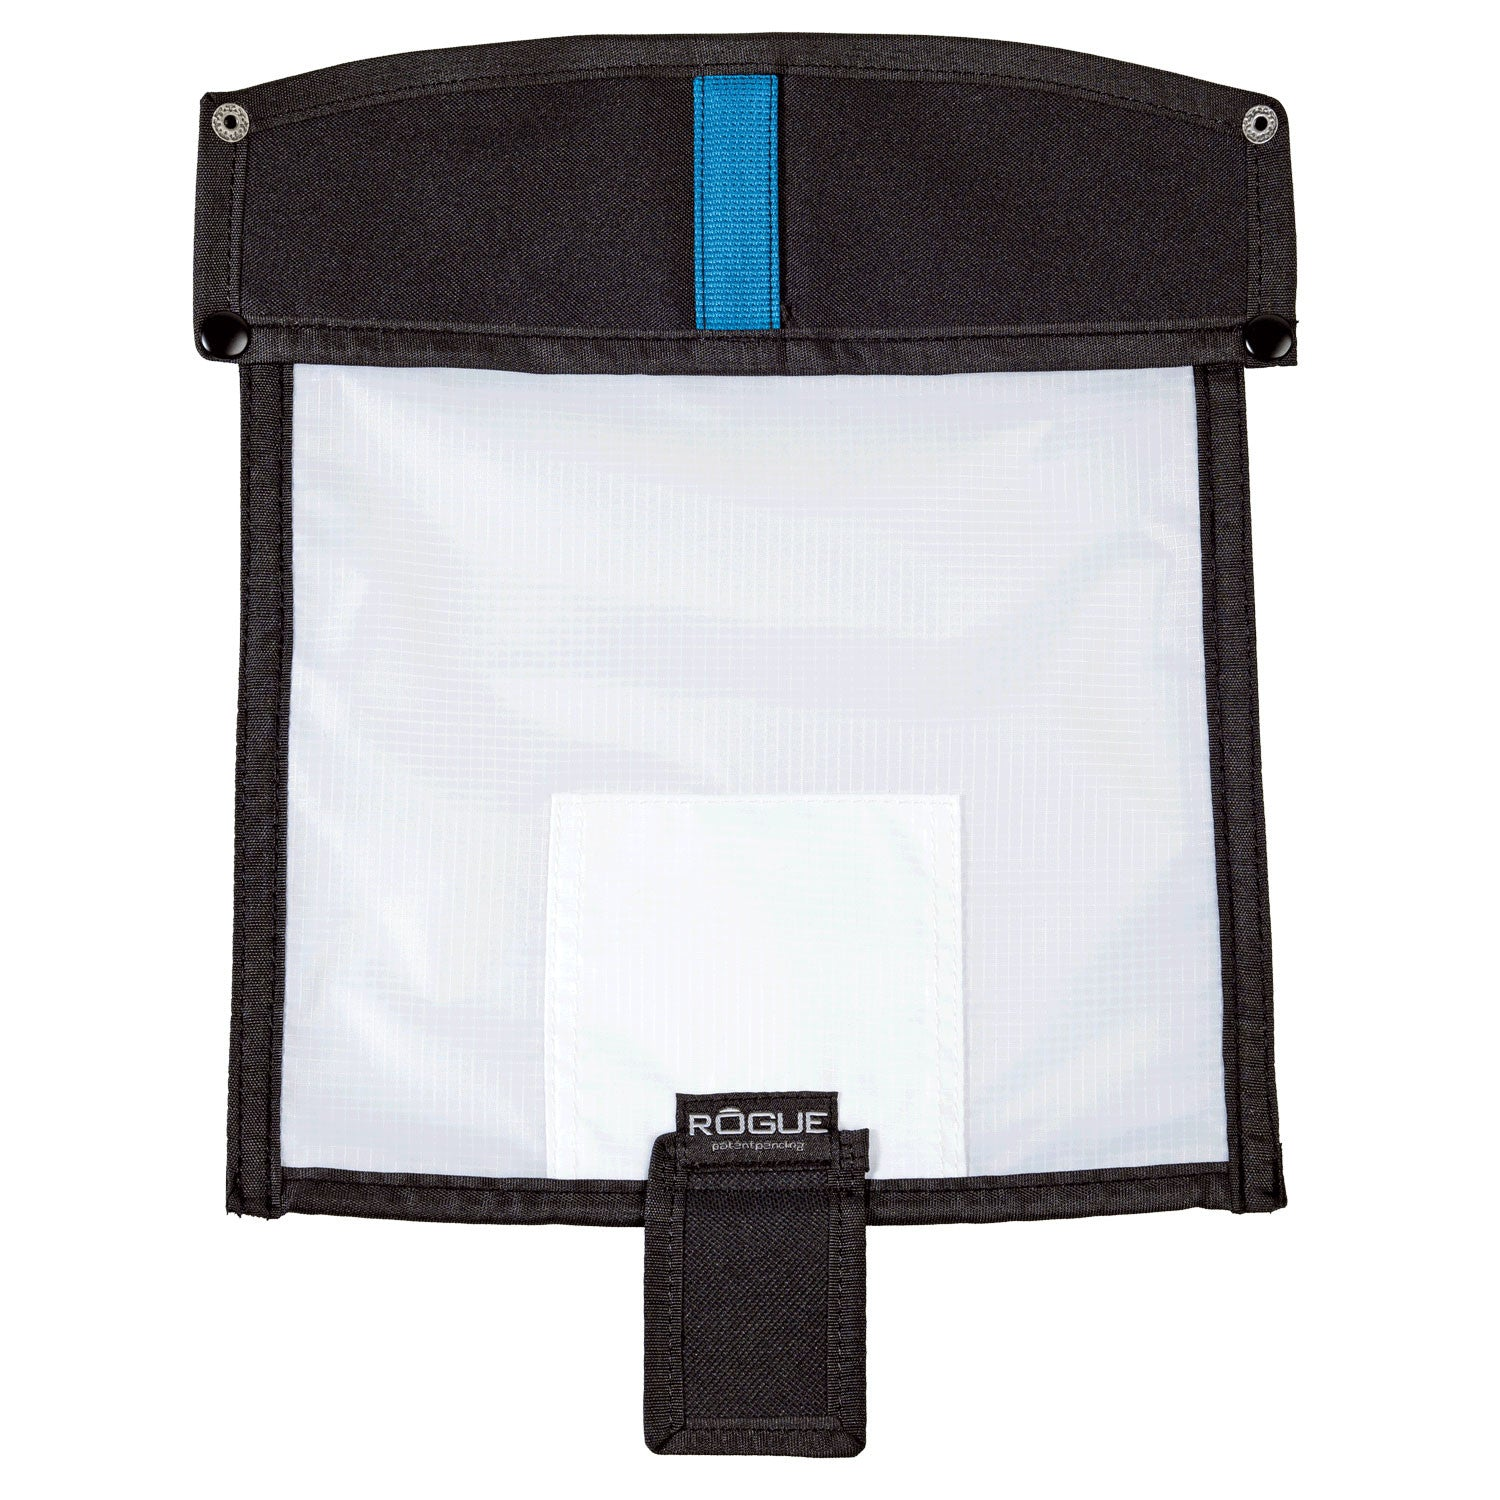 Rogue Flash Bender 2 Large Softbox Kit - Light Modifiers and ...